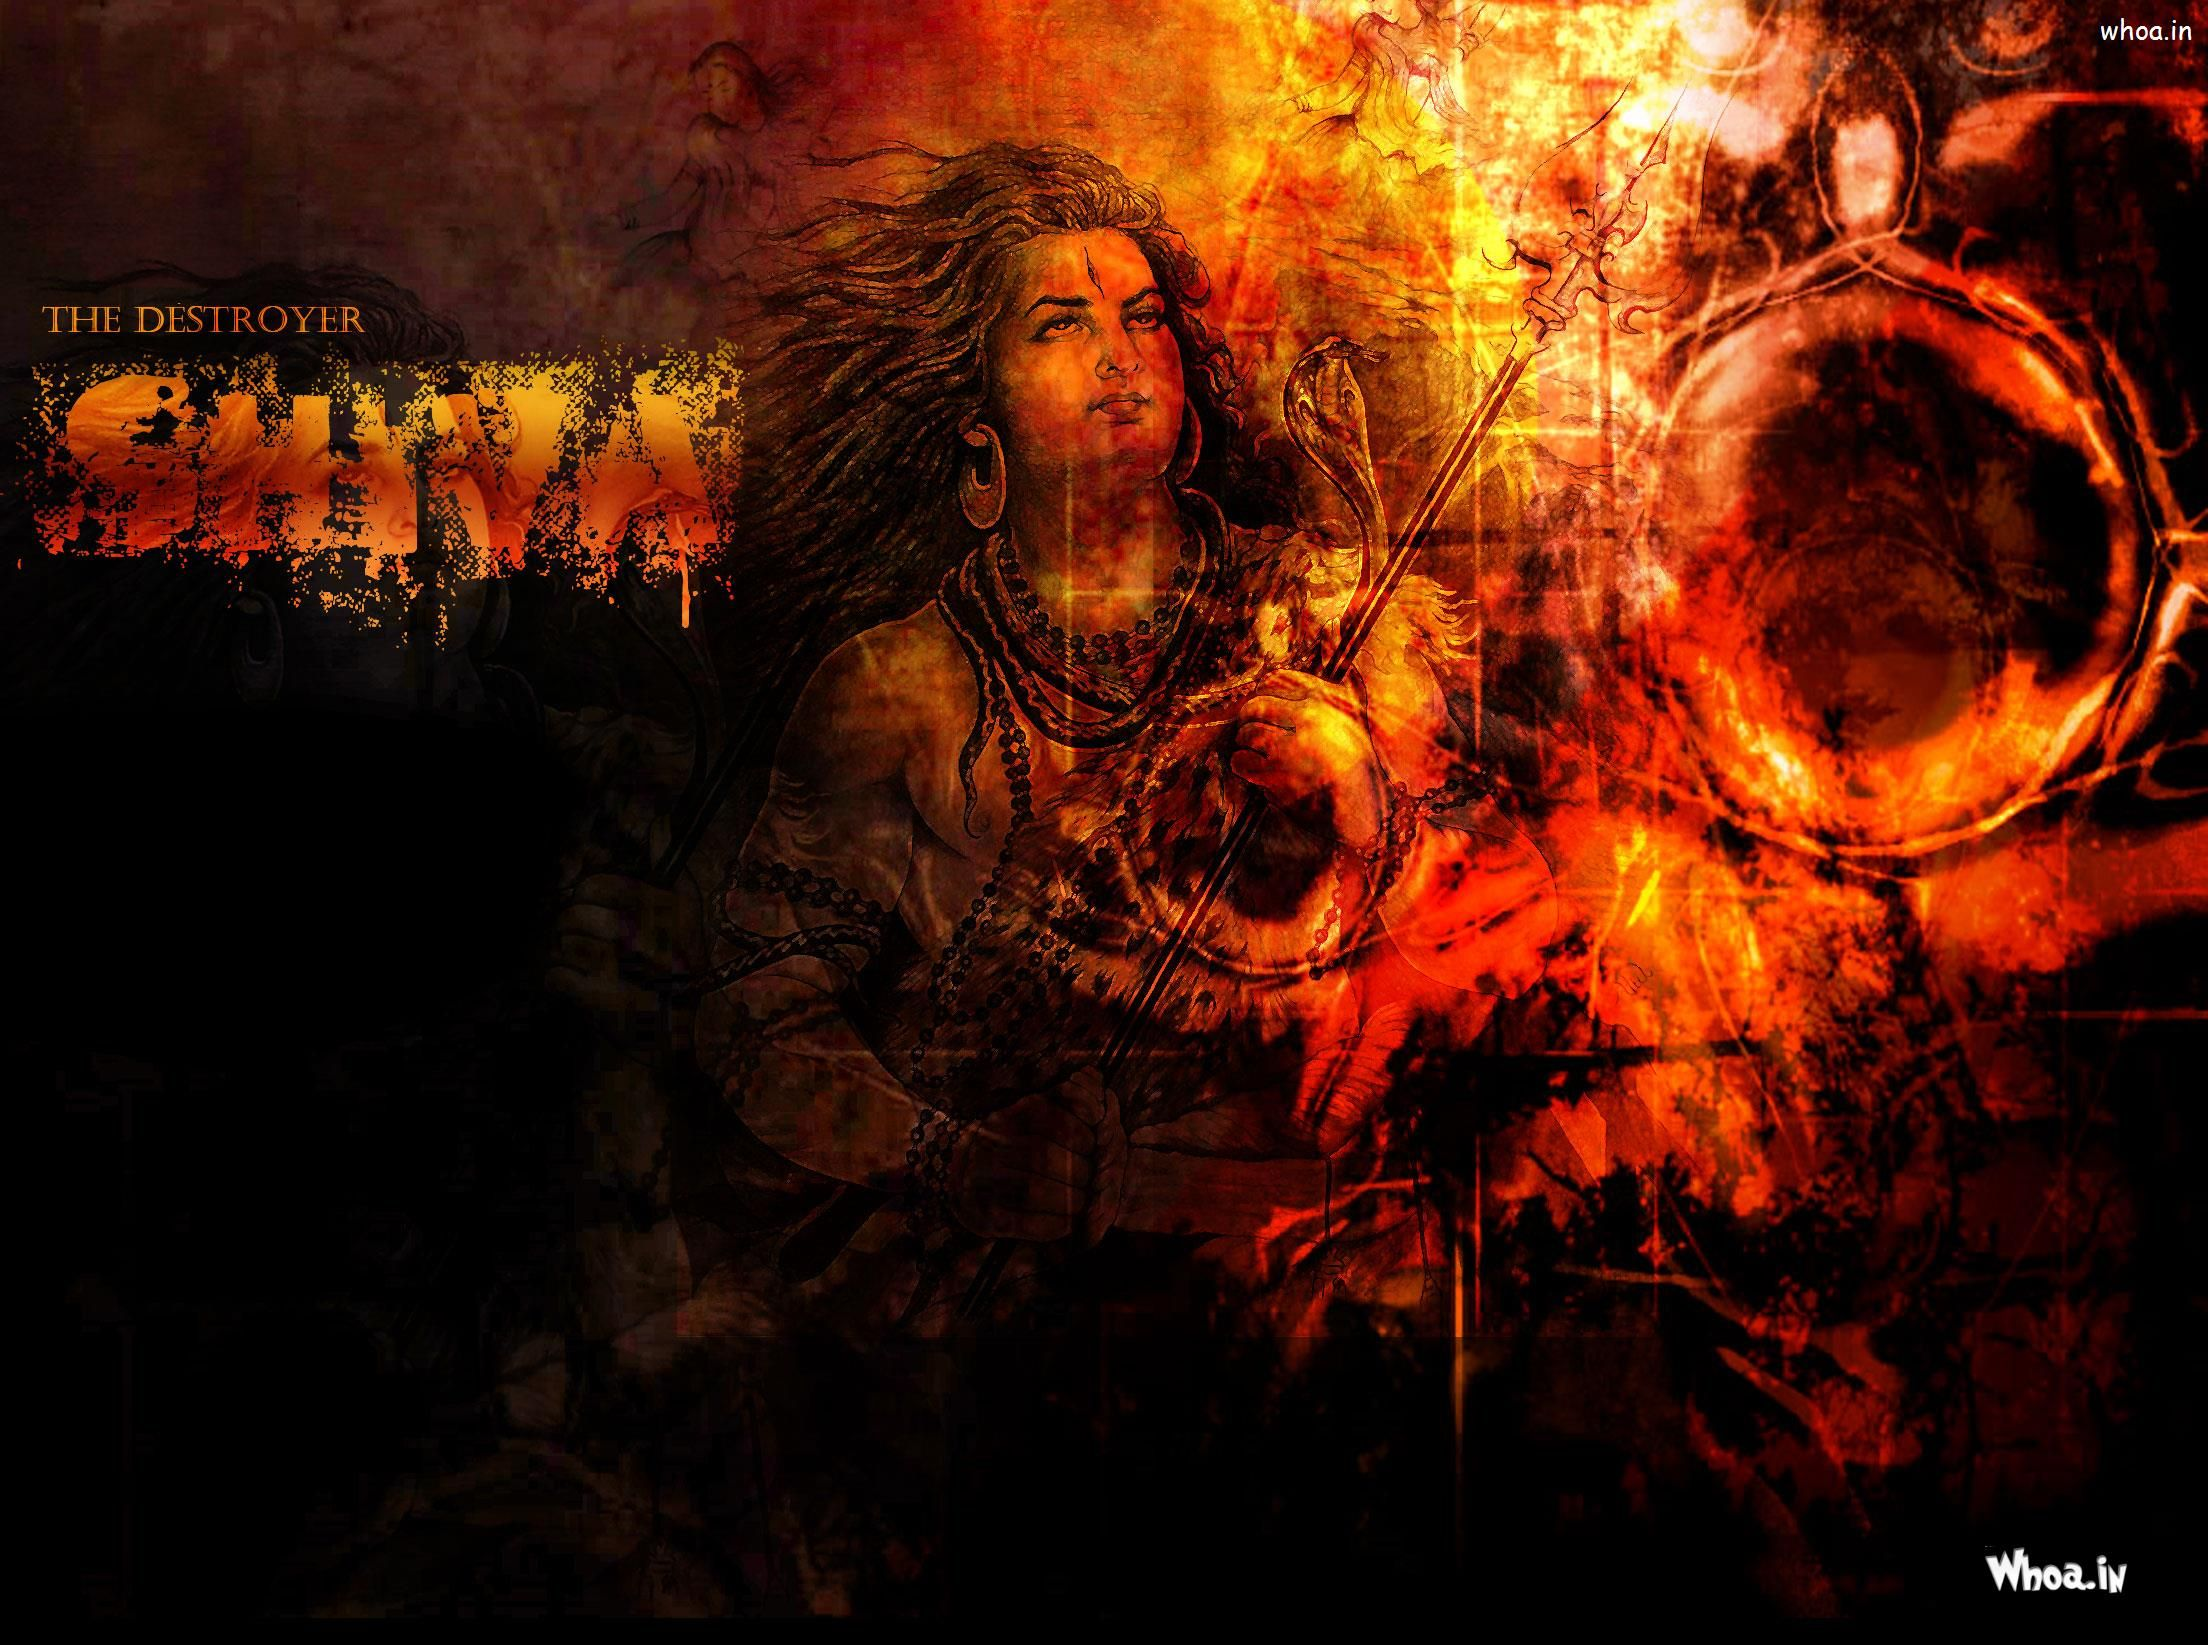 The Destroyer Shiva Hd Wallpaper For Free Download | ak ...